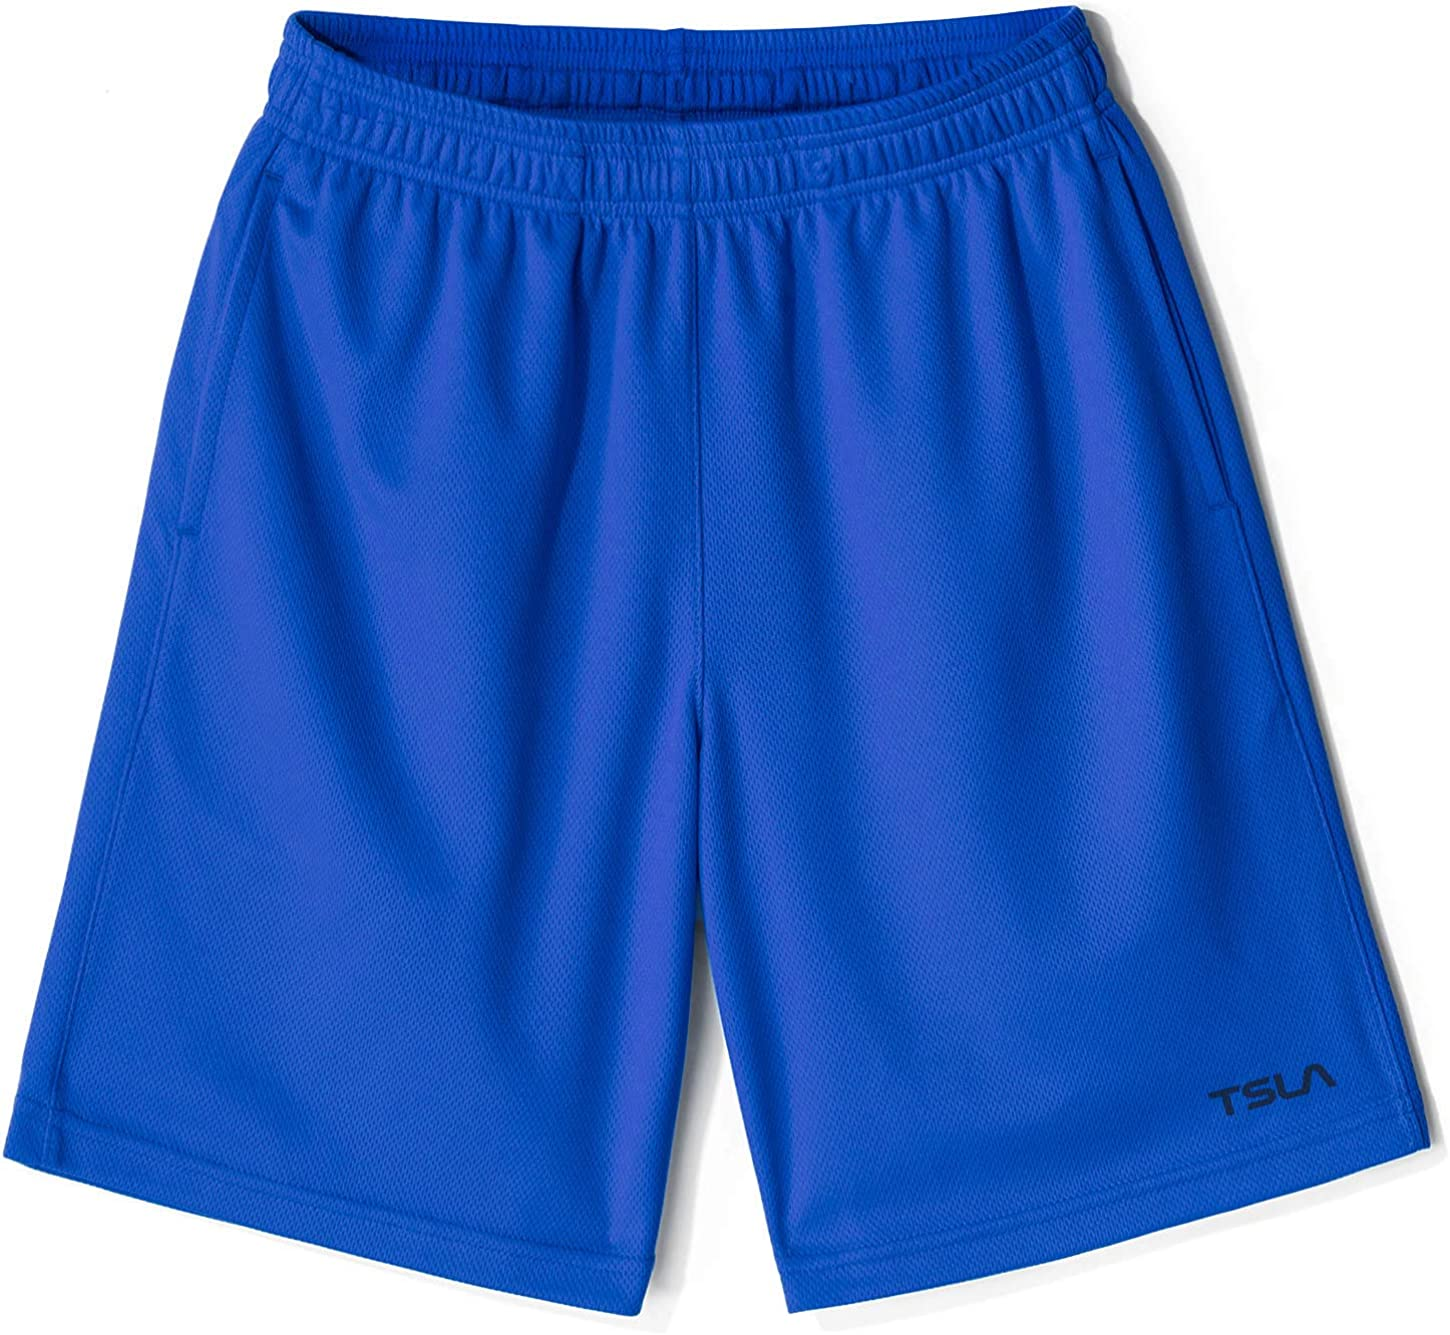 Active Sports Workout Gym Shorts Quick Dry Pull On Basketball Running Shorts TSLA 1 or 2 Pack Boys Athletic Shorts